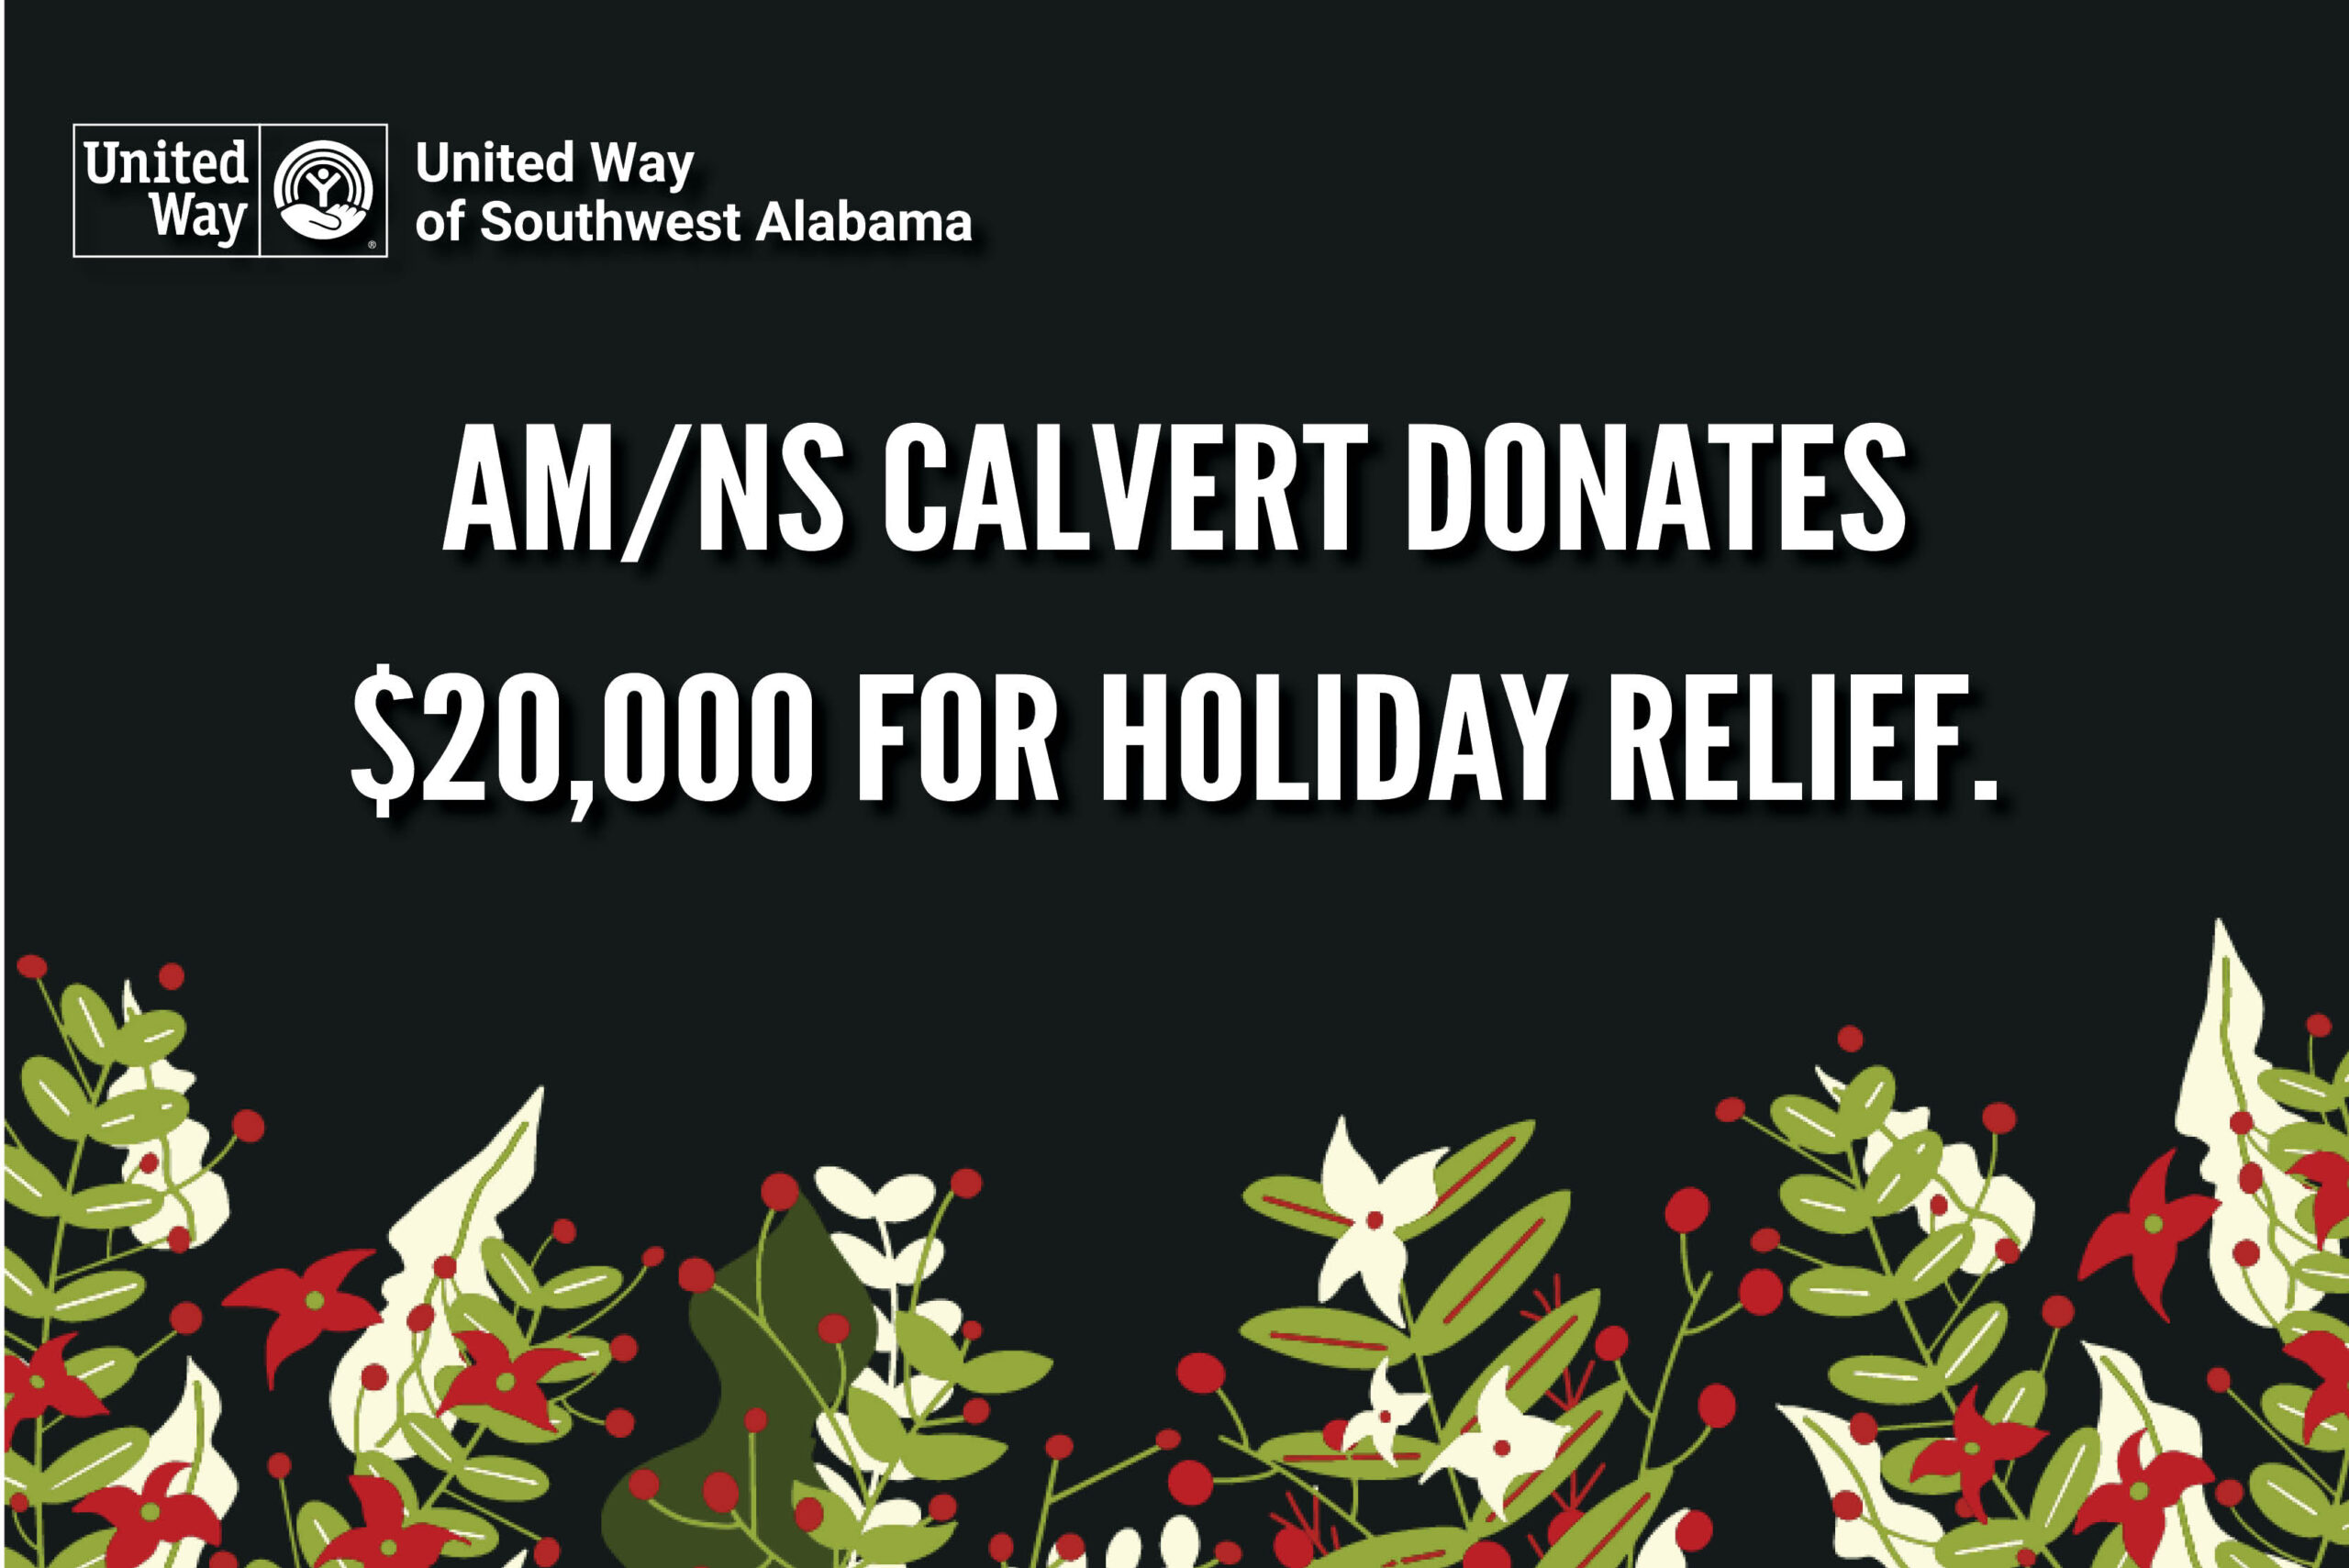 AM/NS Calvert donates $20,000 for holiday relief